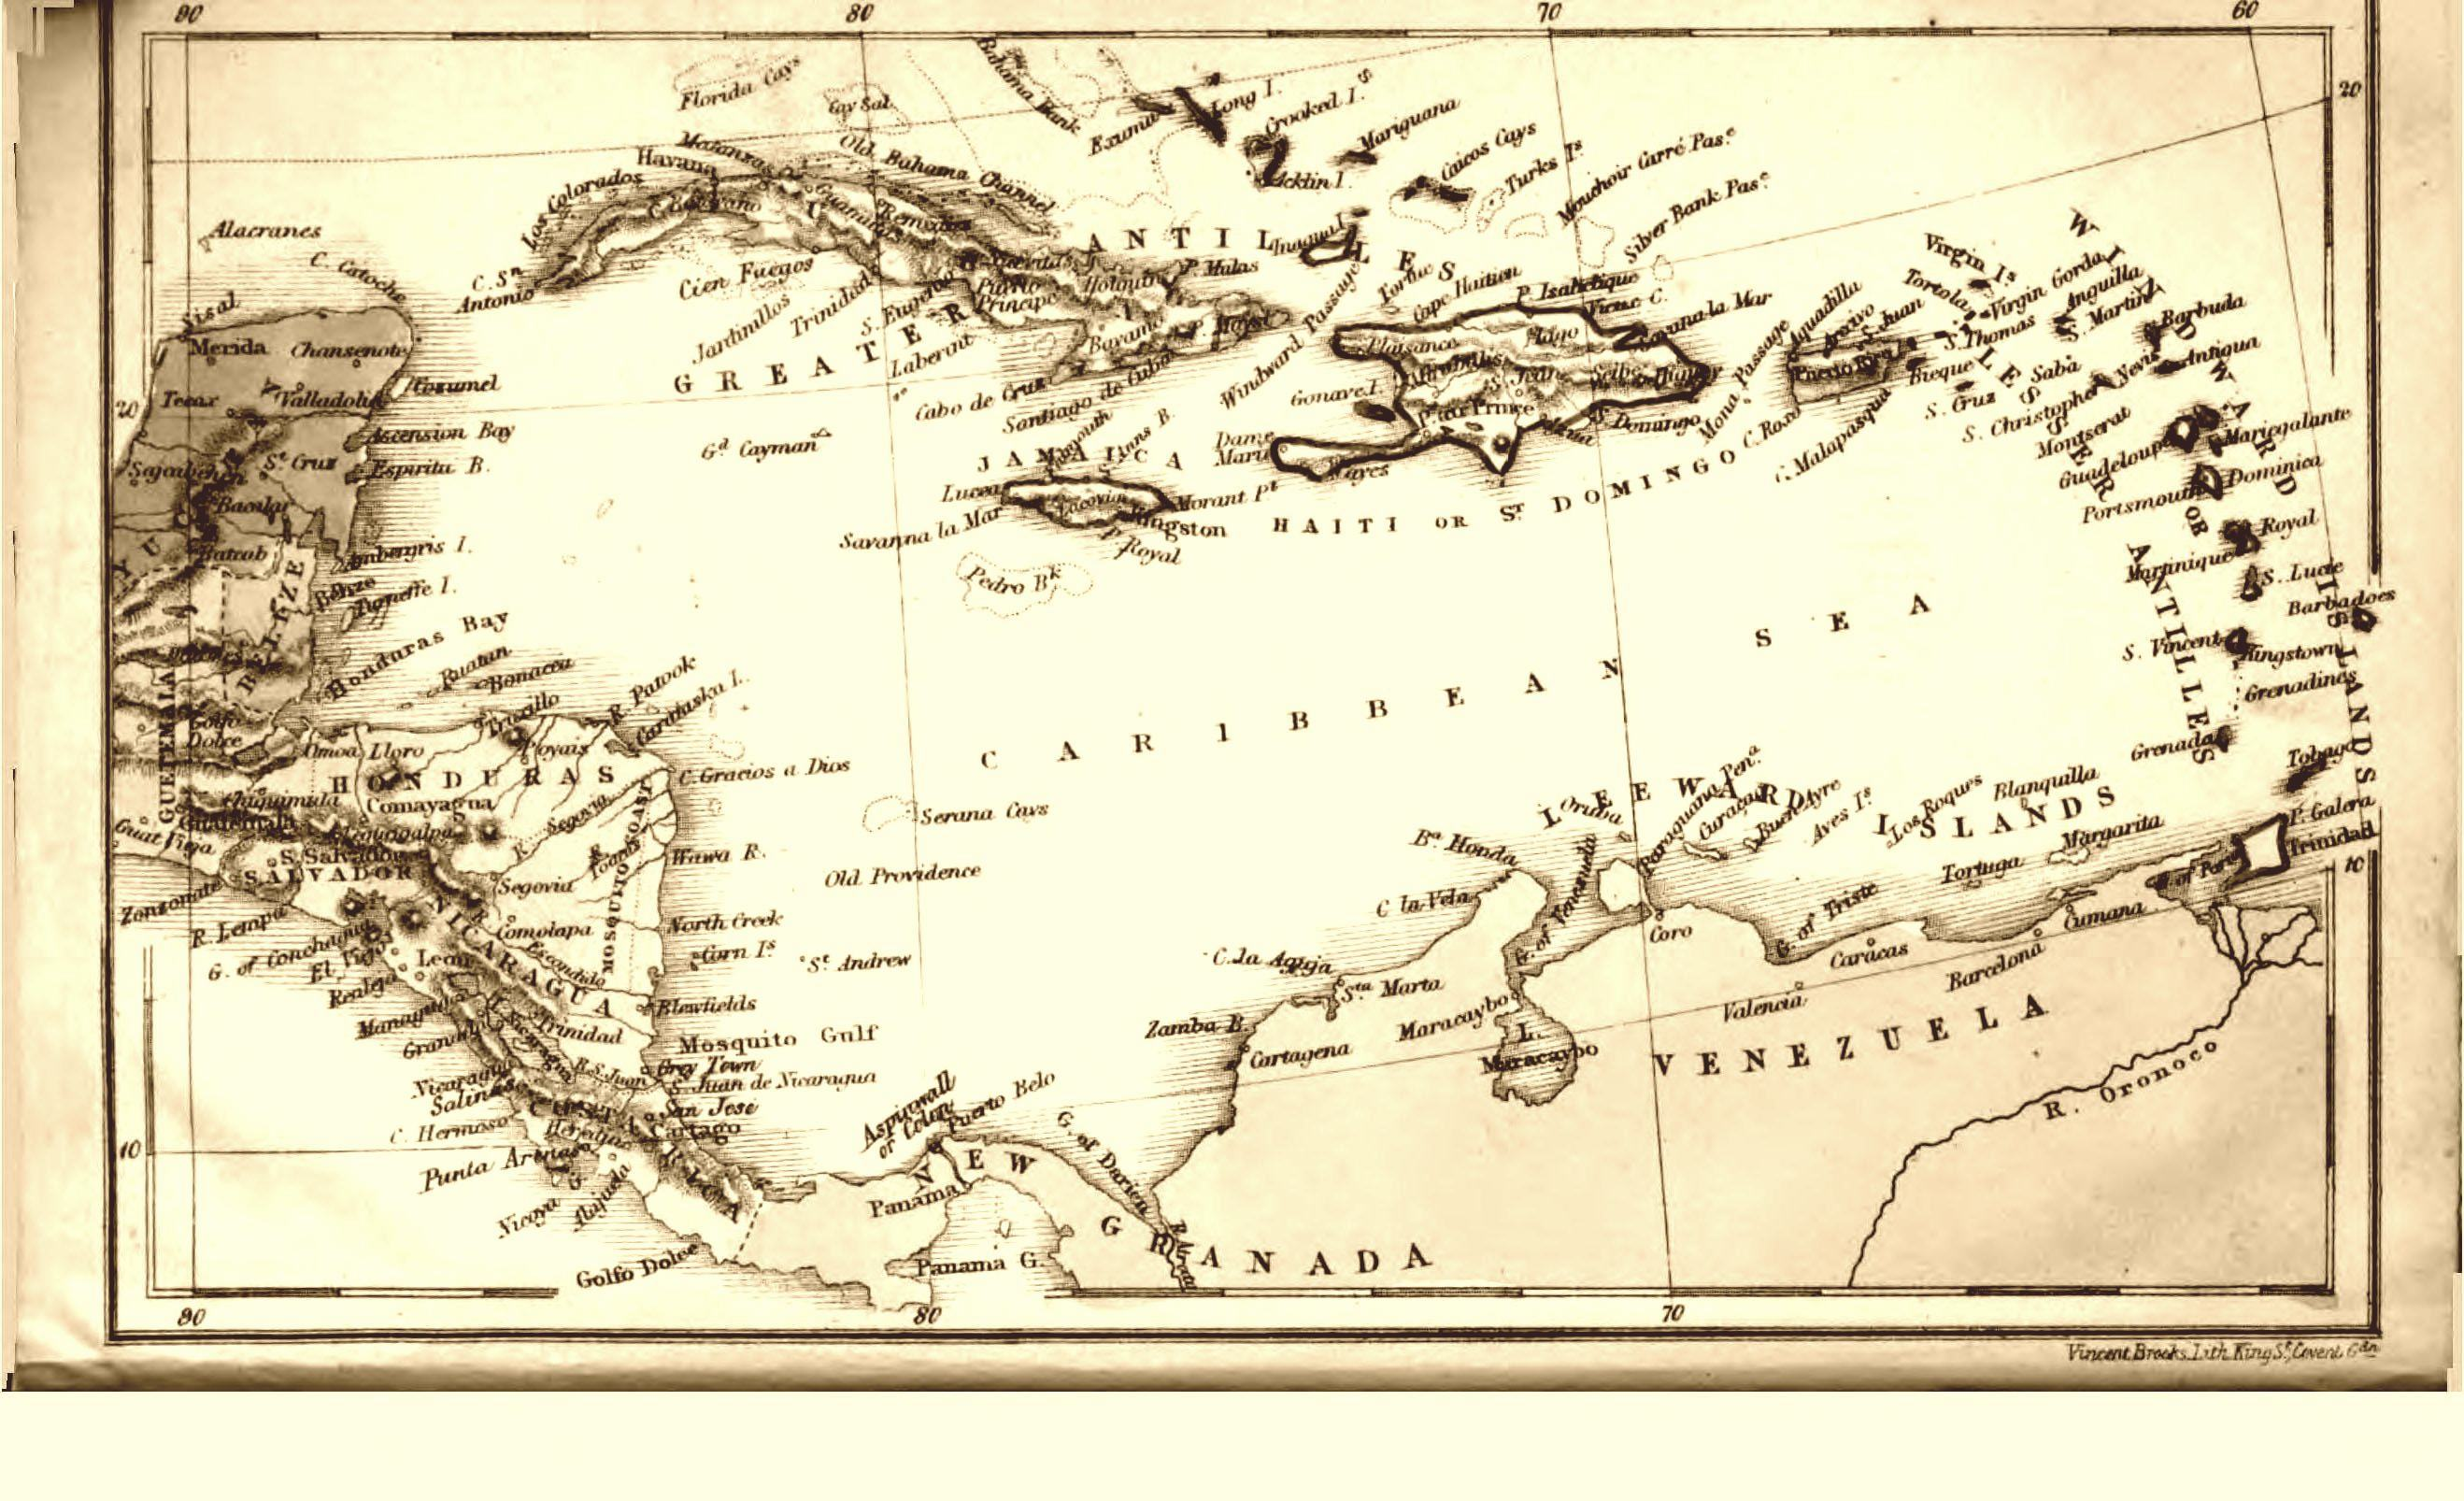 The project gutenberg ebook of the west indies and the spanish main the west indies gumiabroncs Images